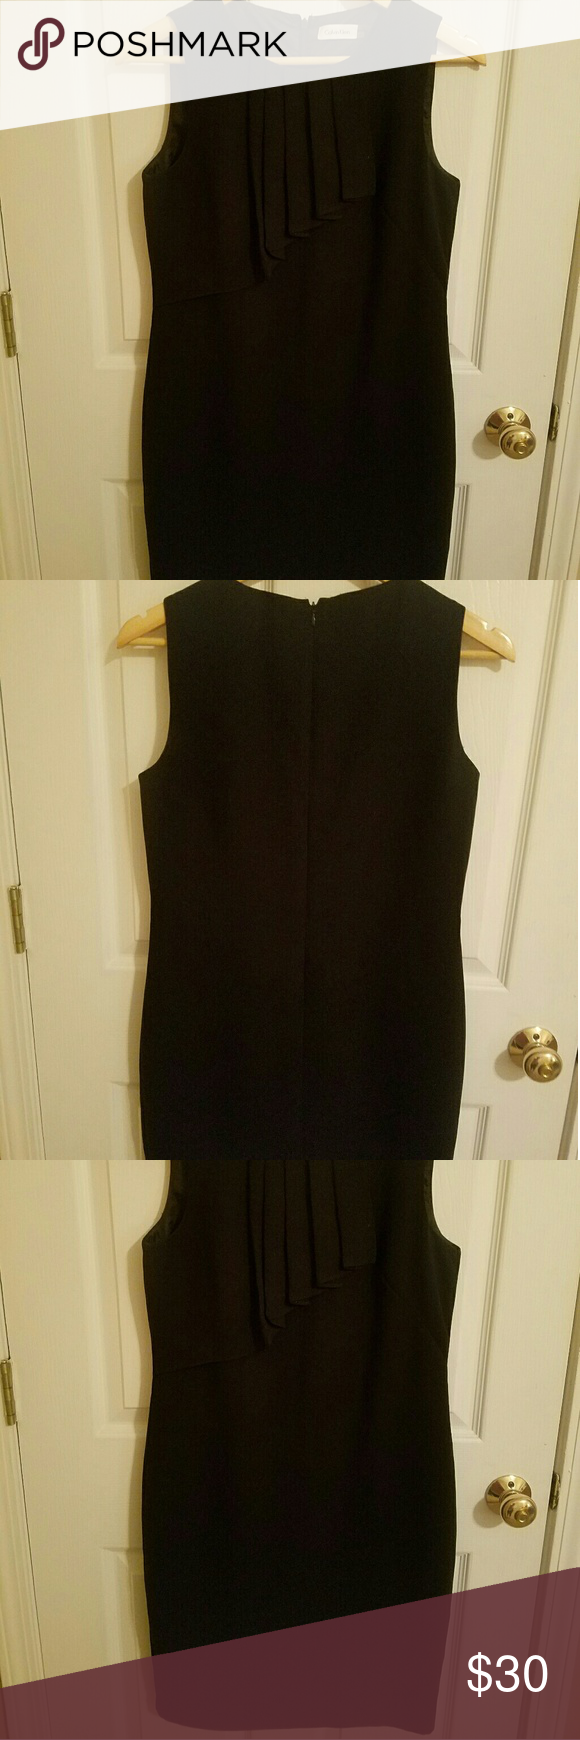 Classic style Calvin Klein sheath dress. Sz 4 Classic, professional, gorgeous style. Wear with belt or without. Calvin Klein Dresses Midi